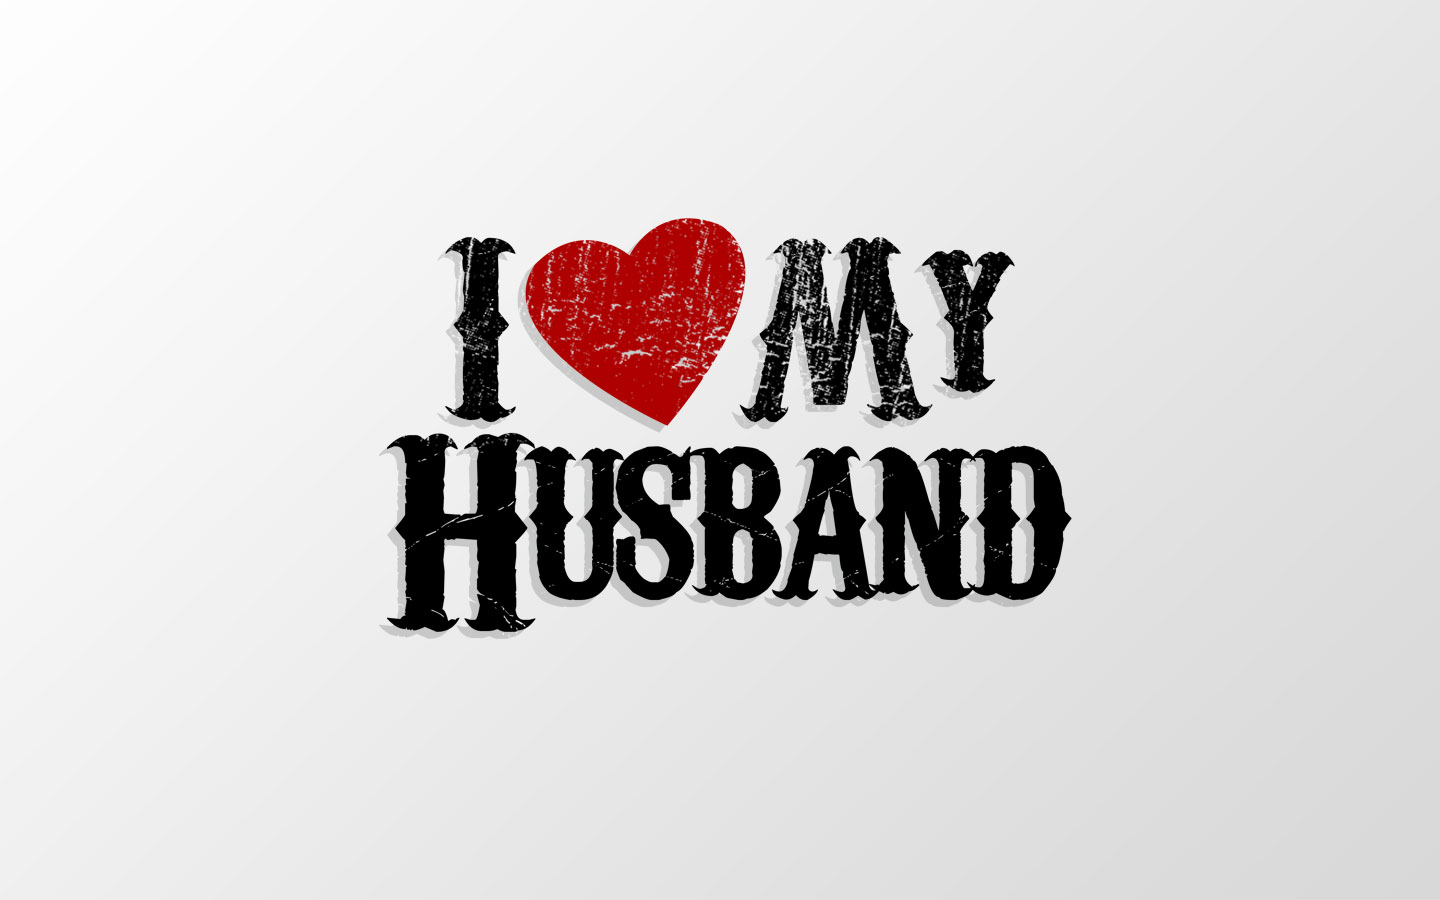 Love My Husband Wallpaper   Christian Wallpapers and Backgrounds 1440x900